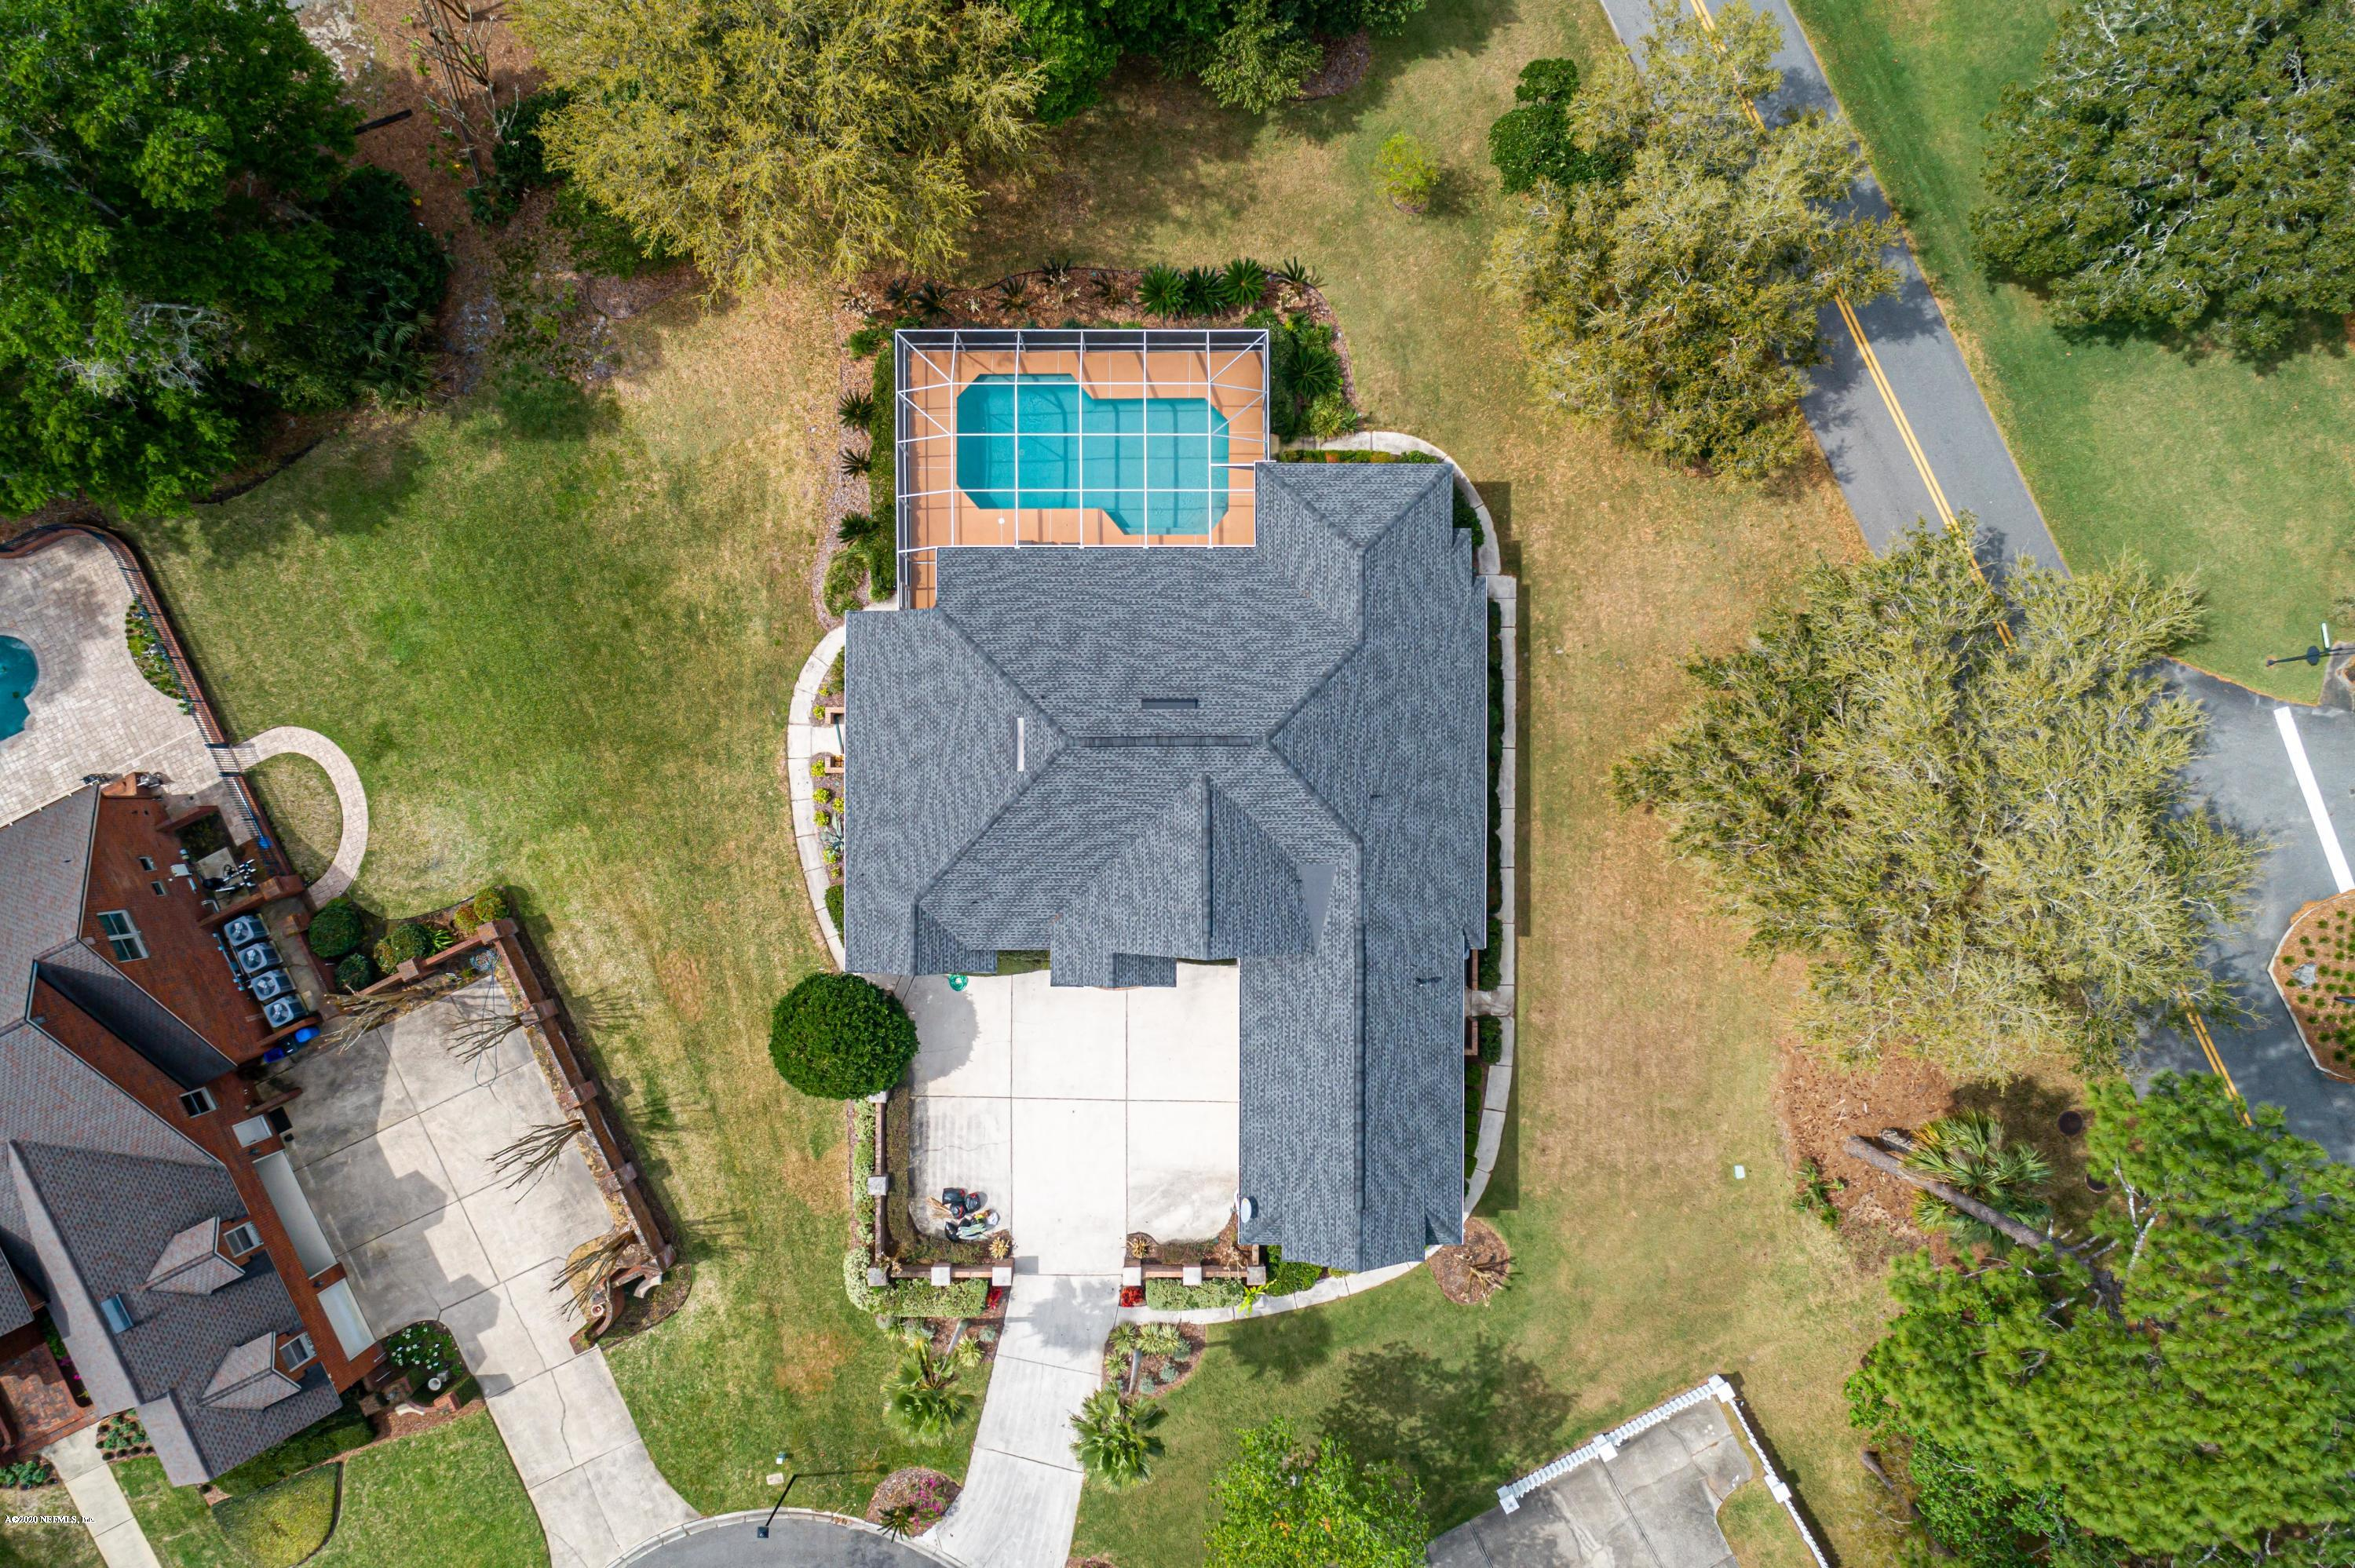 8436 STABLES, JACKSONVILLE, FLORIDA 32256, 4 Bedrooms Bedrooms, ,4 BathroomsBathrooms,Residential,For sale,STABLES,1042312